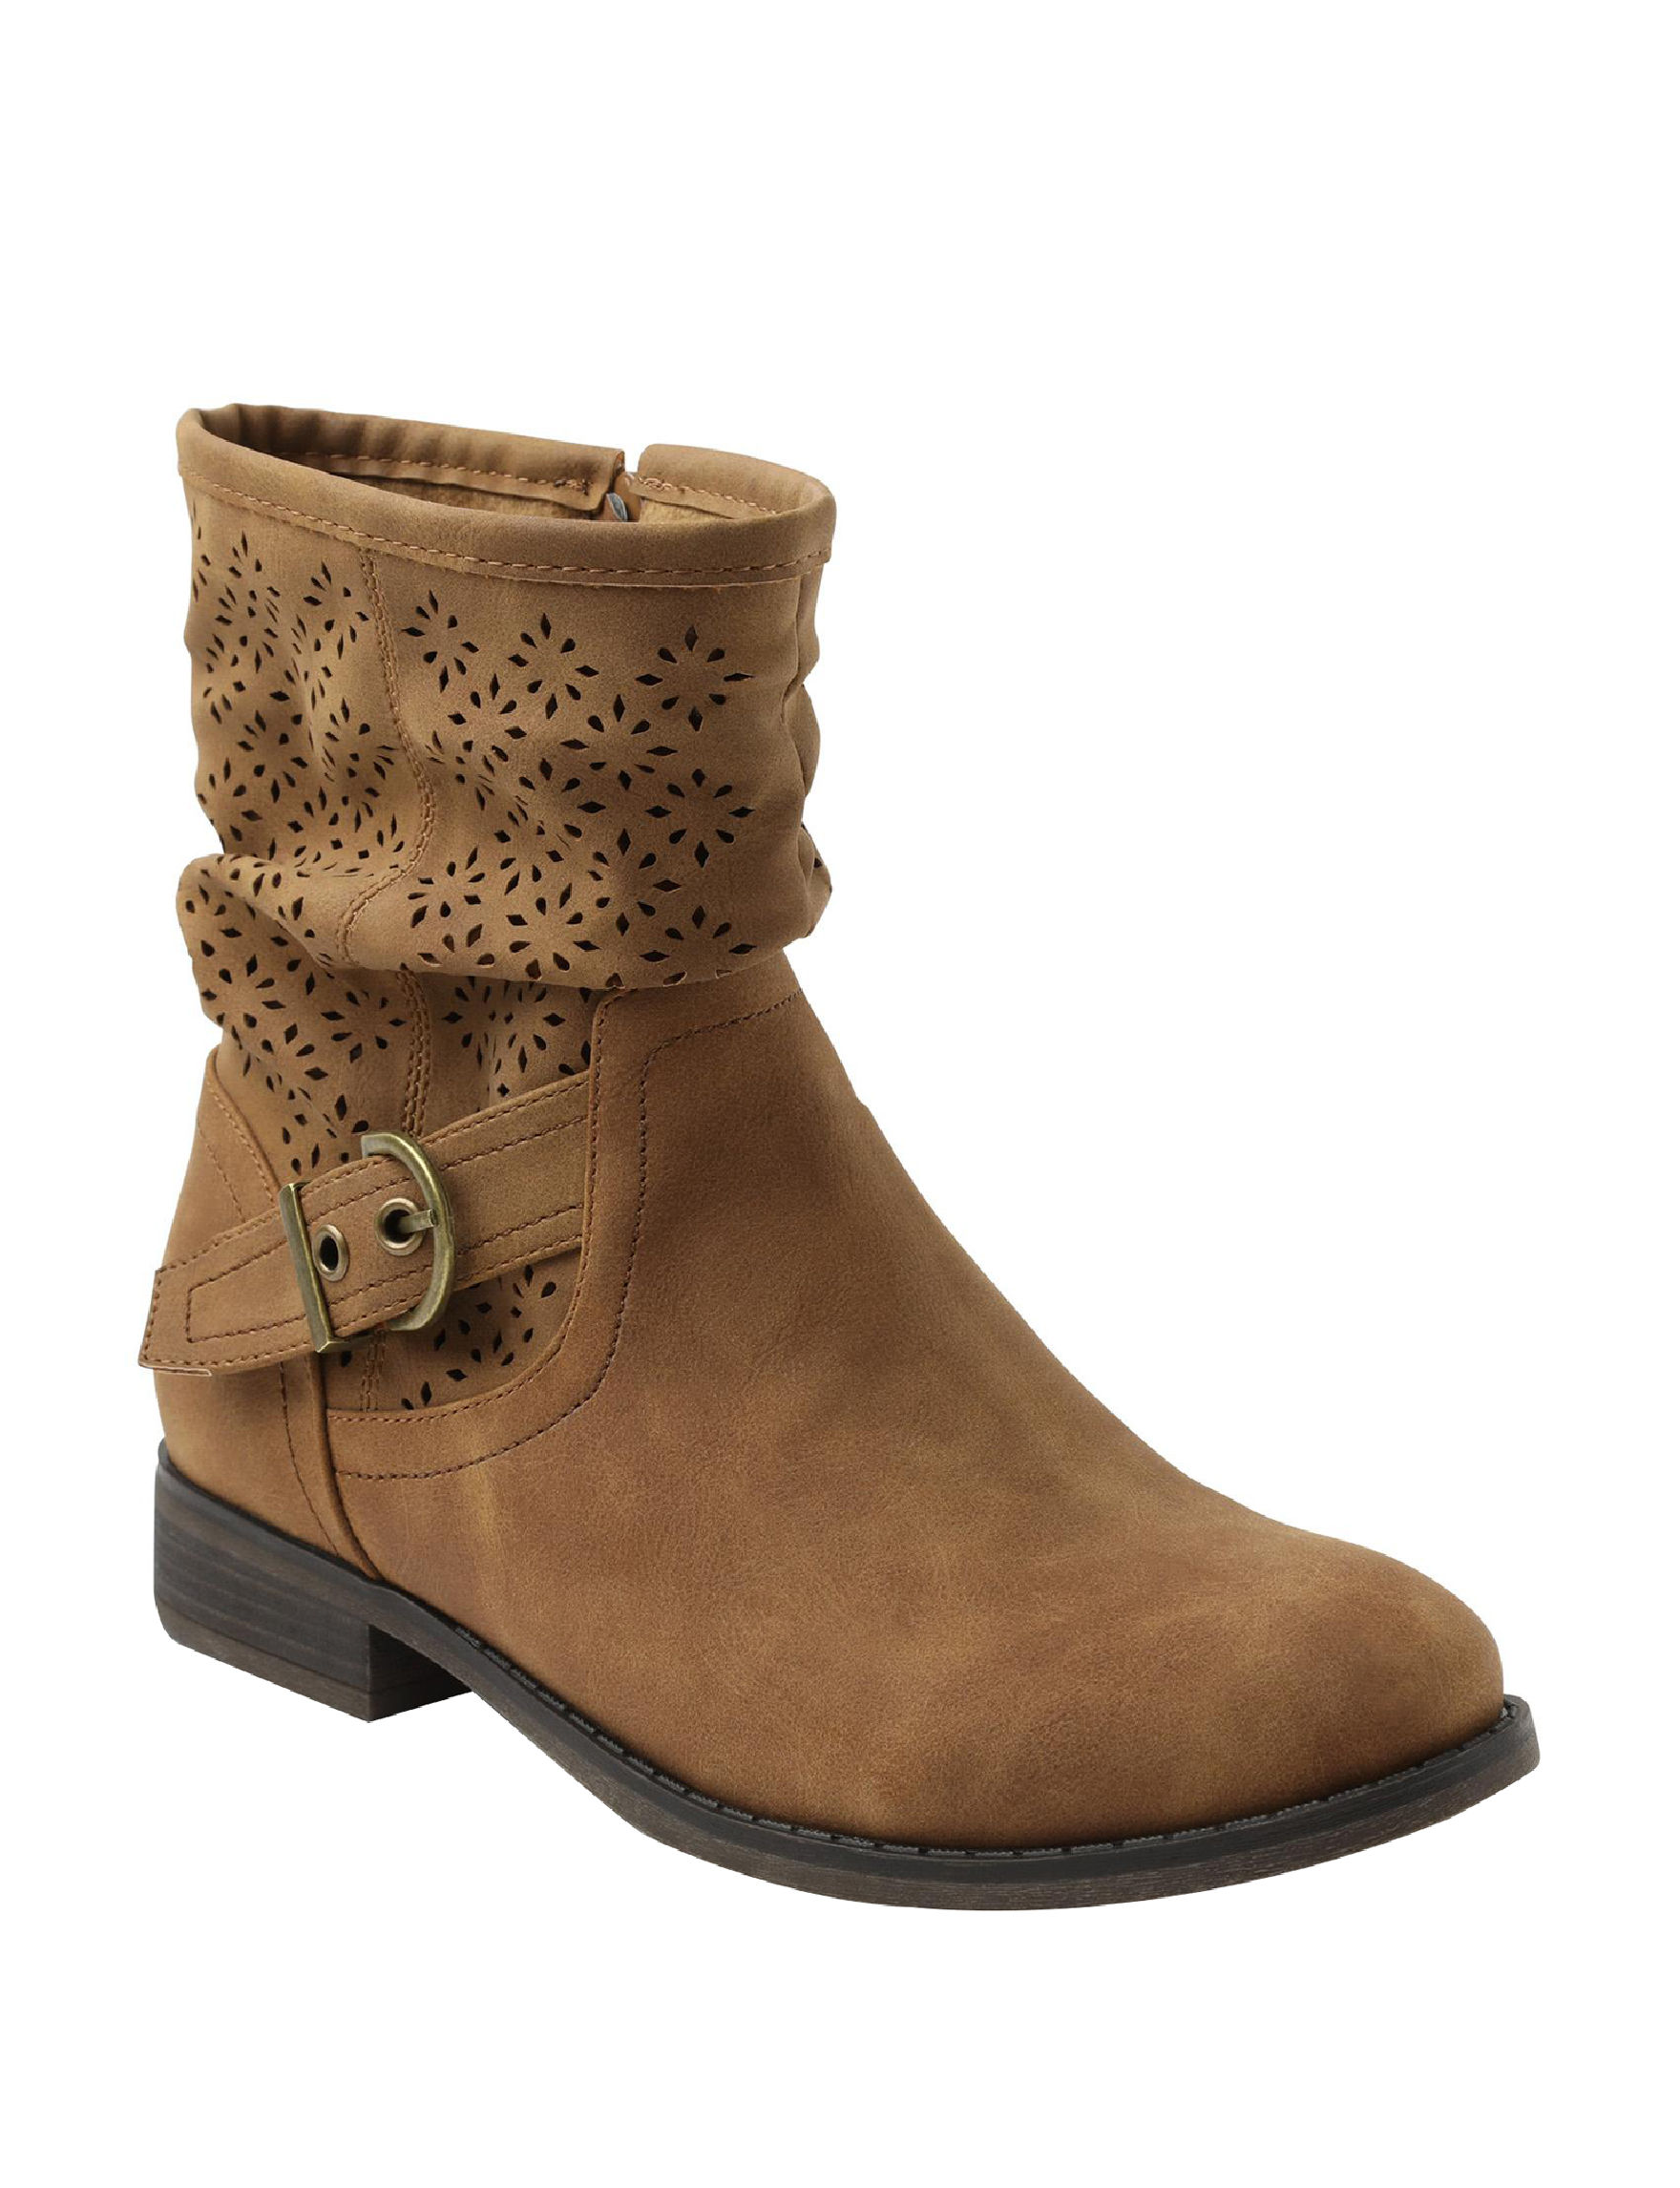 XOXO Tan Ankle Boots & Booties